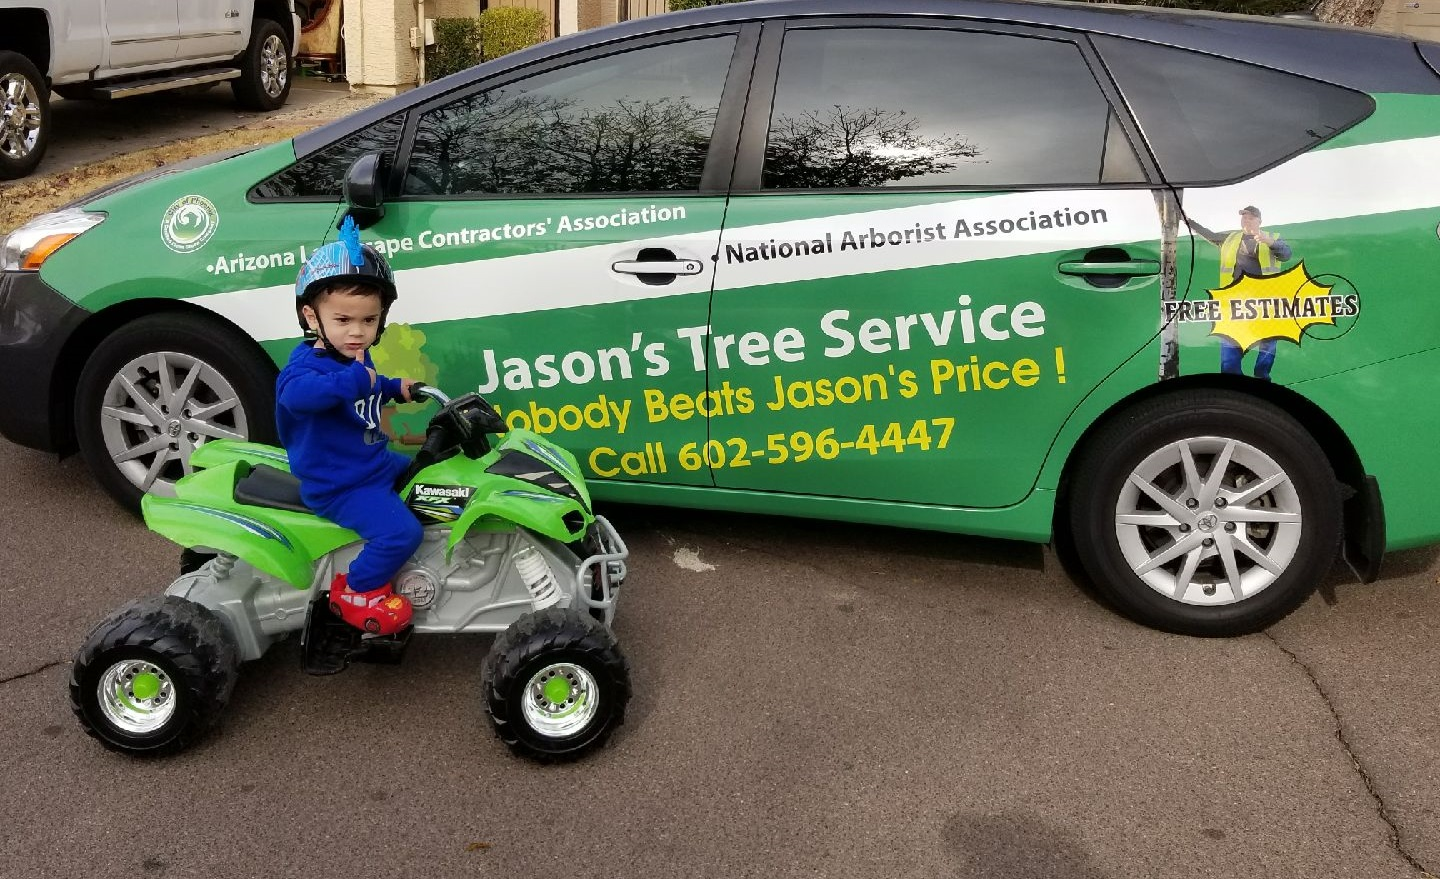 Jason's Tree Services